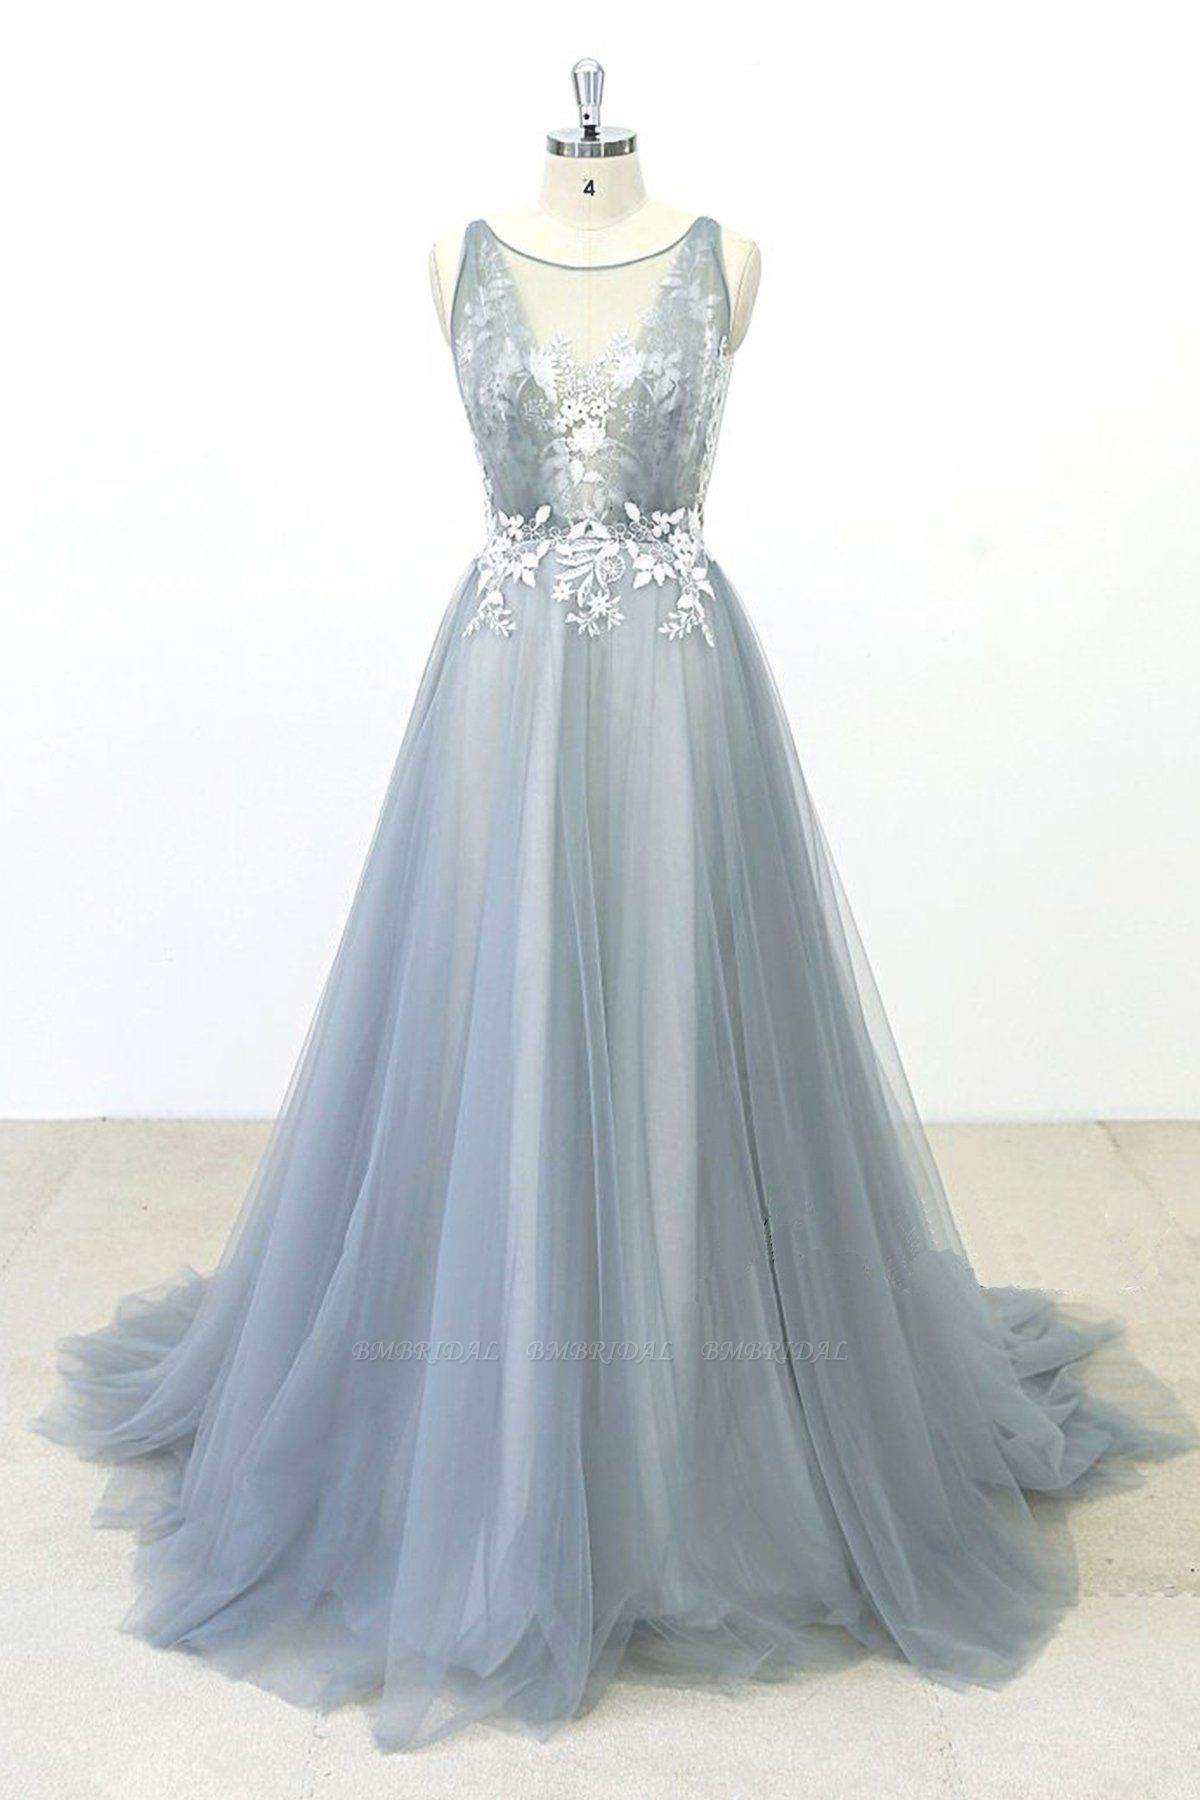 BMbridal Elegant Gray Tulle Round Neck Beach Wedding Dress Jewel Sweep Train Bridal Gowns On Sale